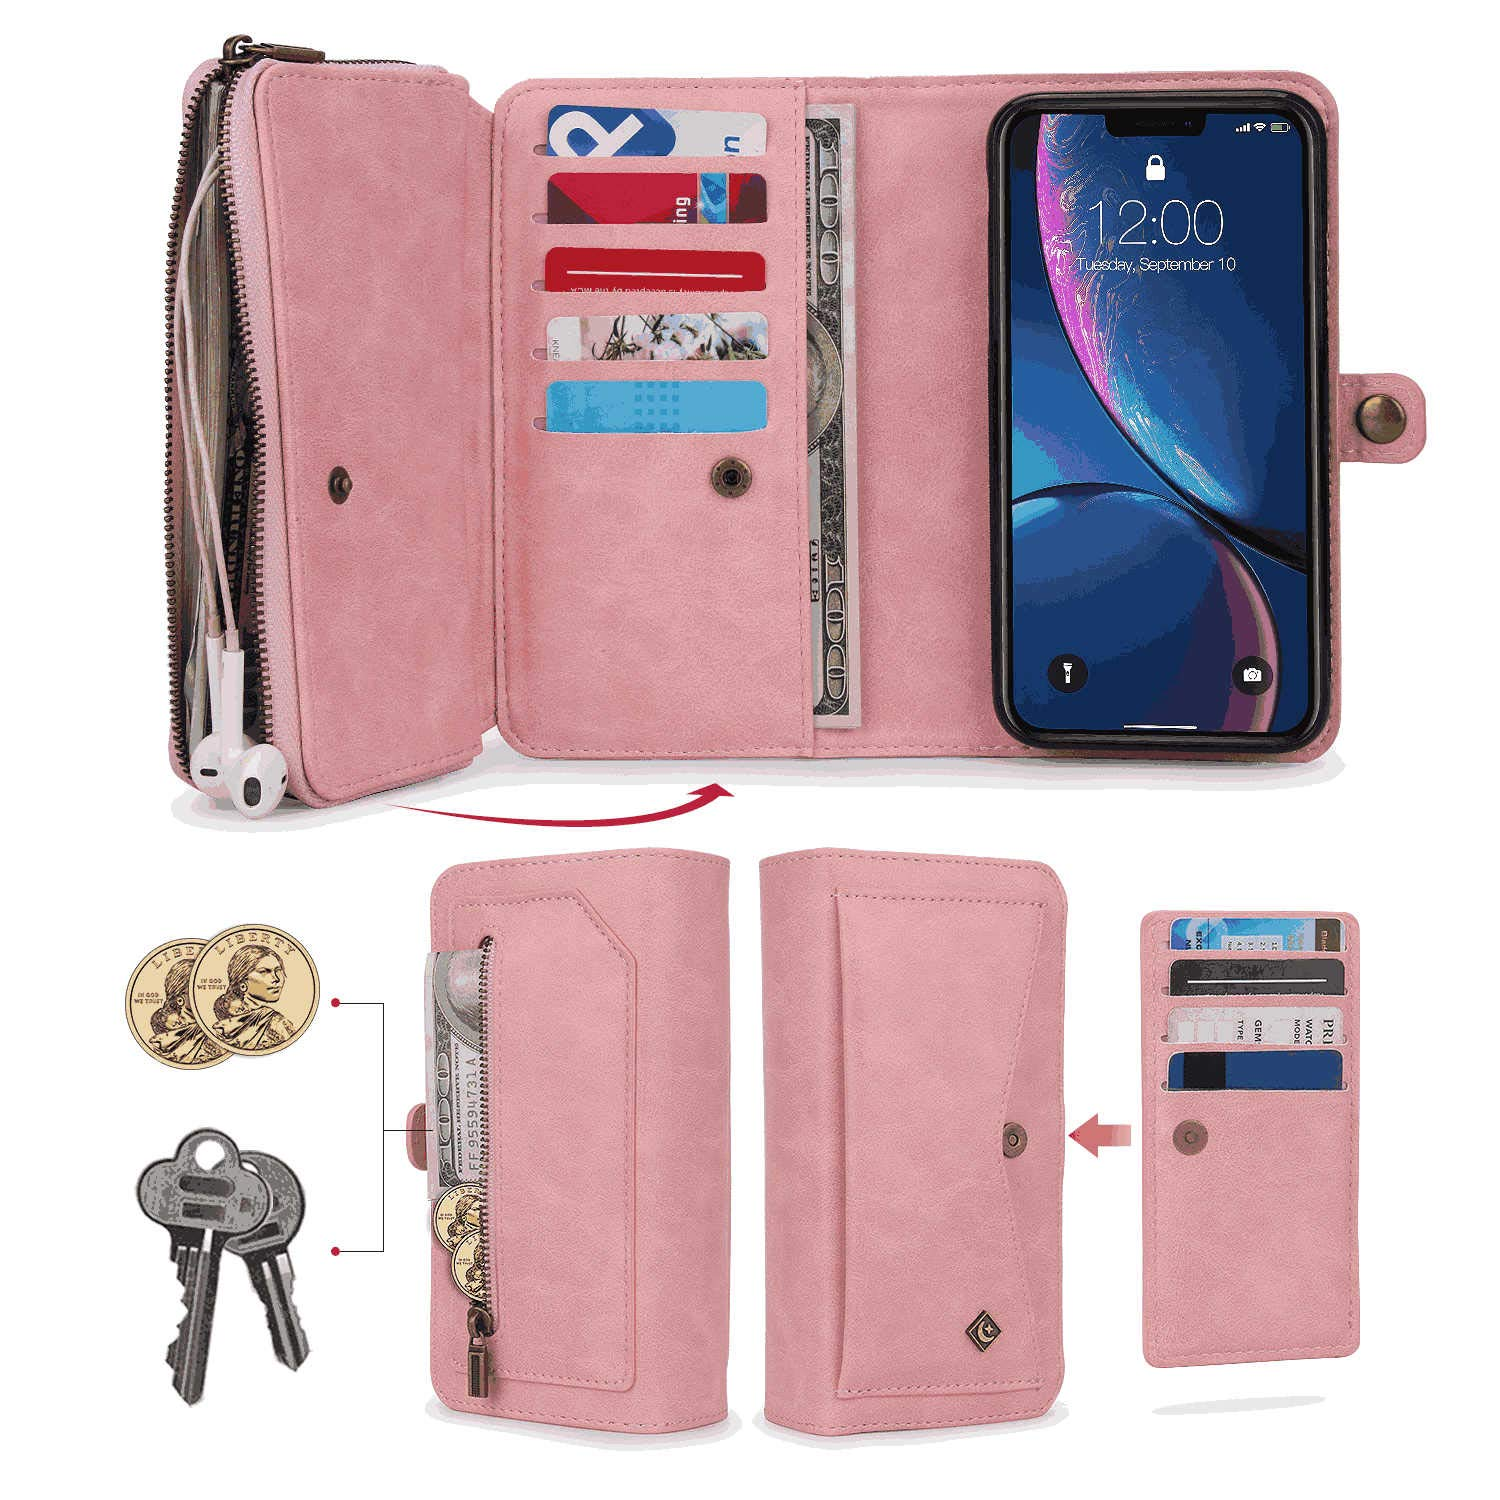 iPhone 11 Pro Max Flip Case Cover for iPhone 11 Pro Max Leather Kickstand Wallet Cover Card Holders Extra-Durable Business with Free Waterproof-Bag Absorbing